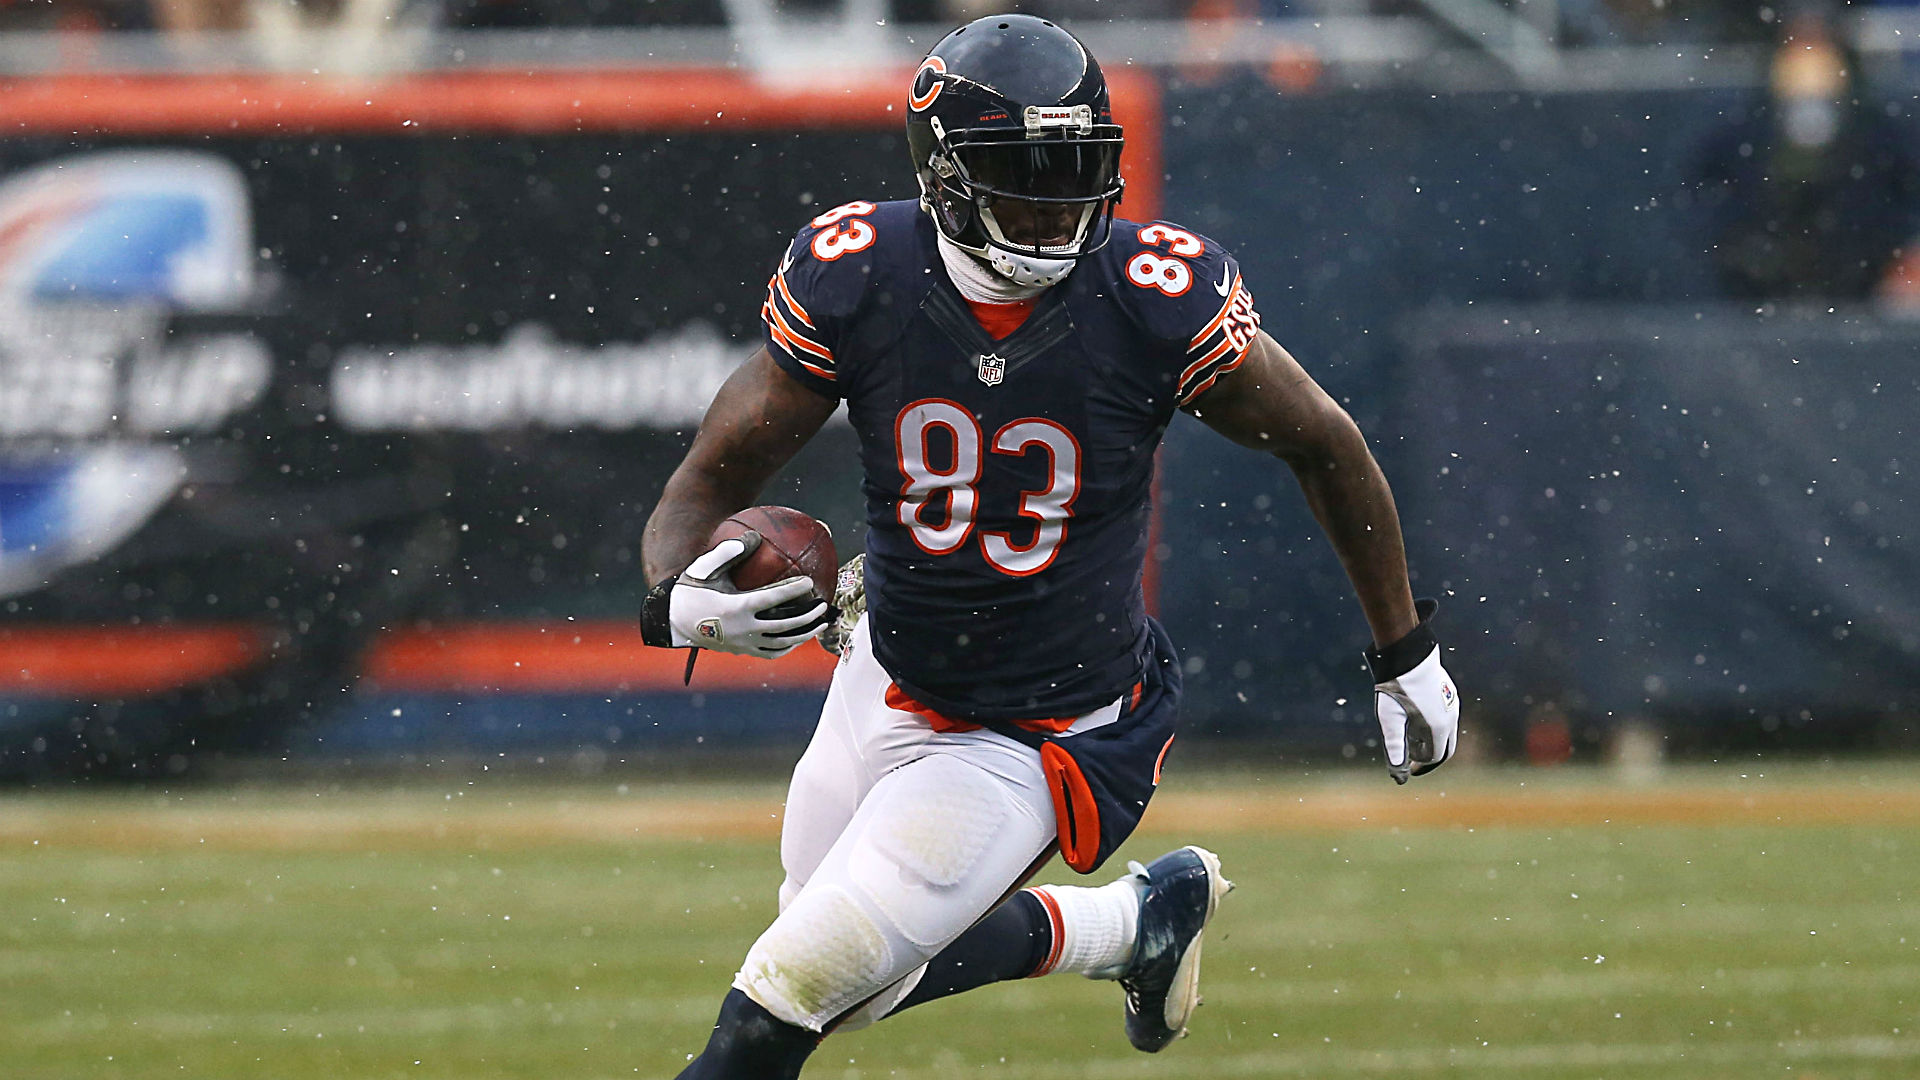 Martellus Bennett has been MIA from Bears workouts